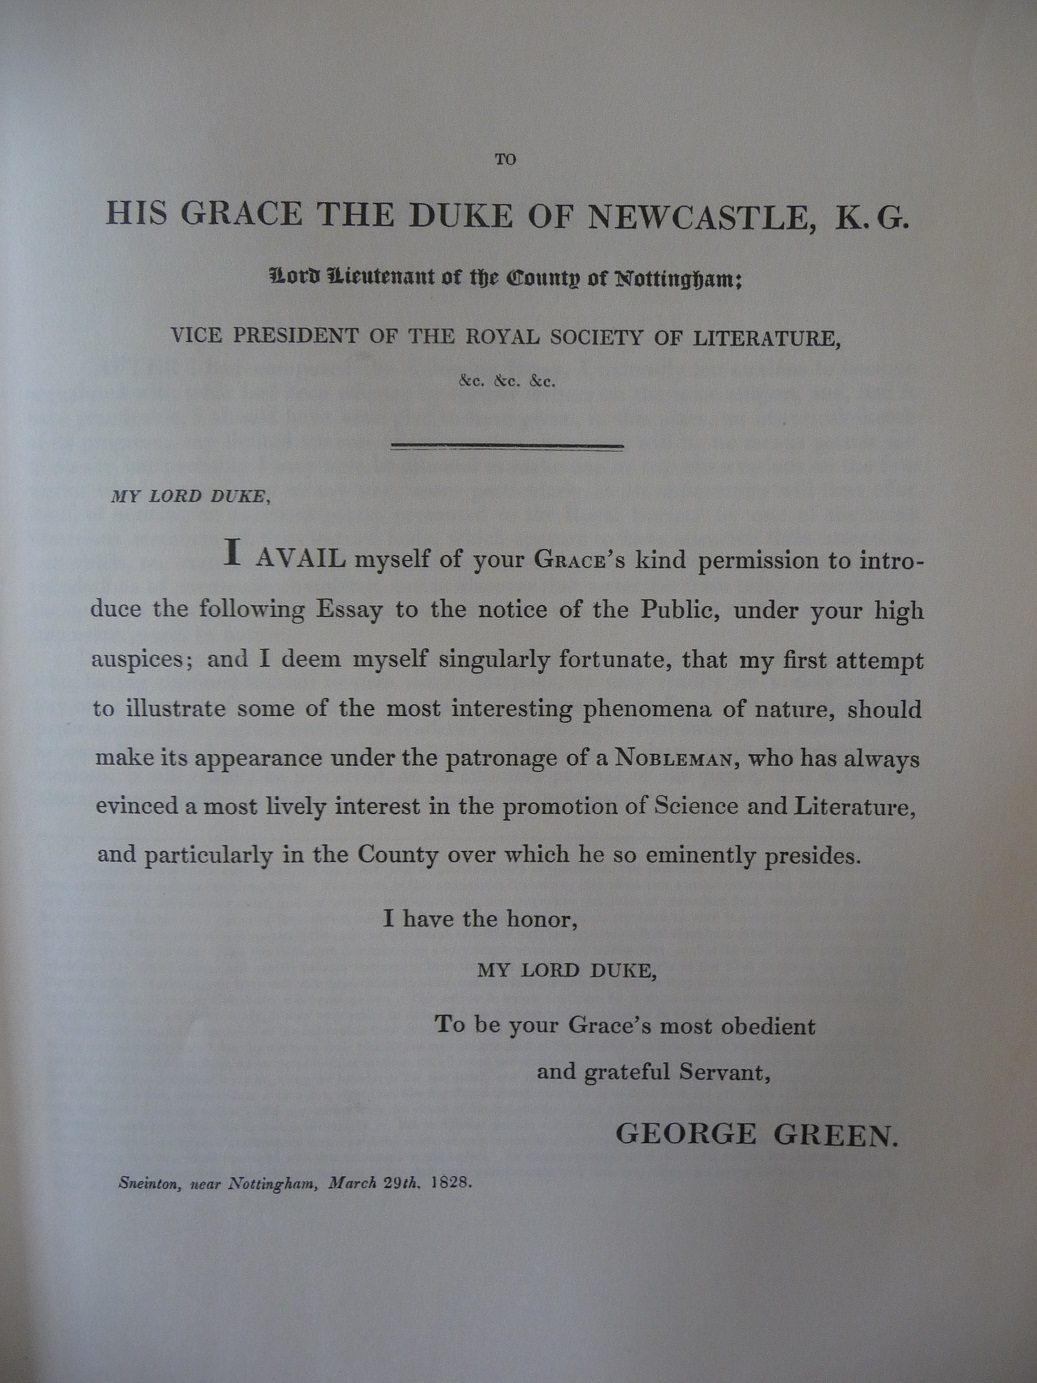 George Green's dedication to His Grace The Duke or Newcastle. It reads: My Lord Duke, I avail myself of your Grace's kind permission to introduce the following Essay to the notice of the Public, under your high auspices; and I deem myself singularly fortunate, that my first attempt to illustrate some of the most interesting phenomena of nature, should make its appearance under the patronage of a Nobelman, who has always envinced a most lively interest in the promotion of Science and Literature..""